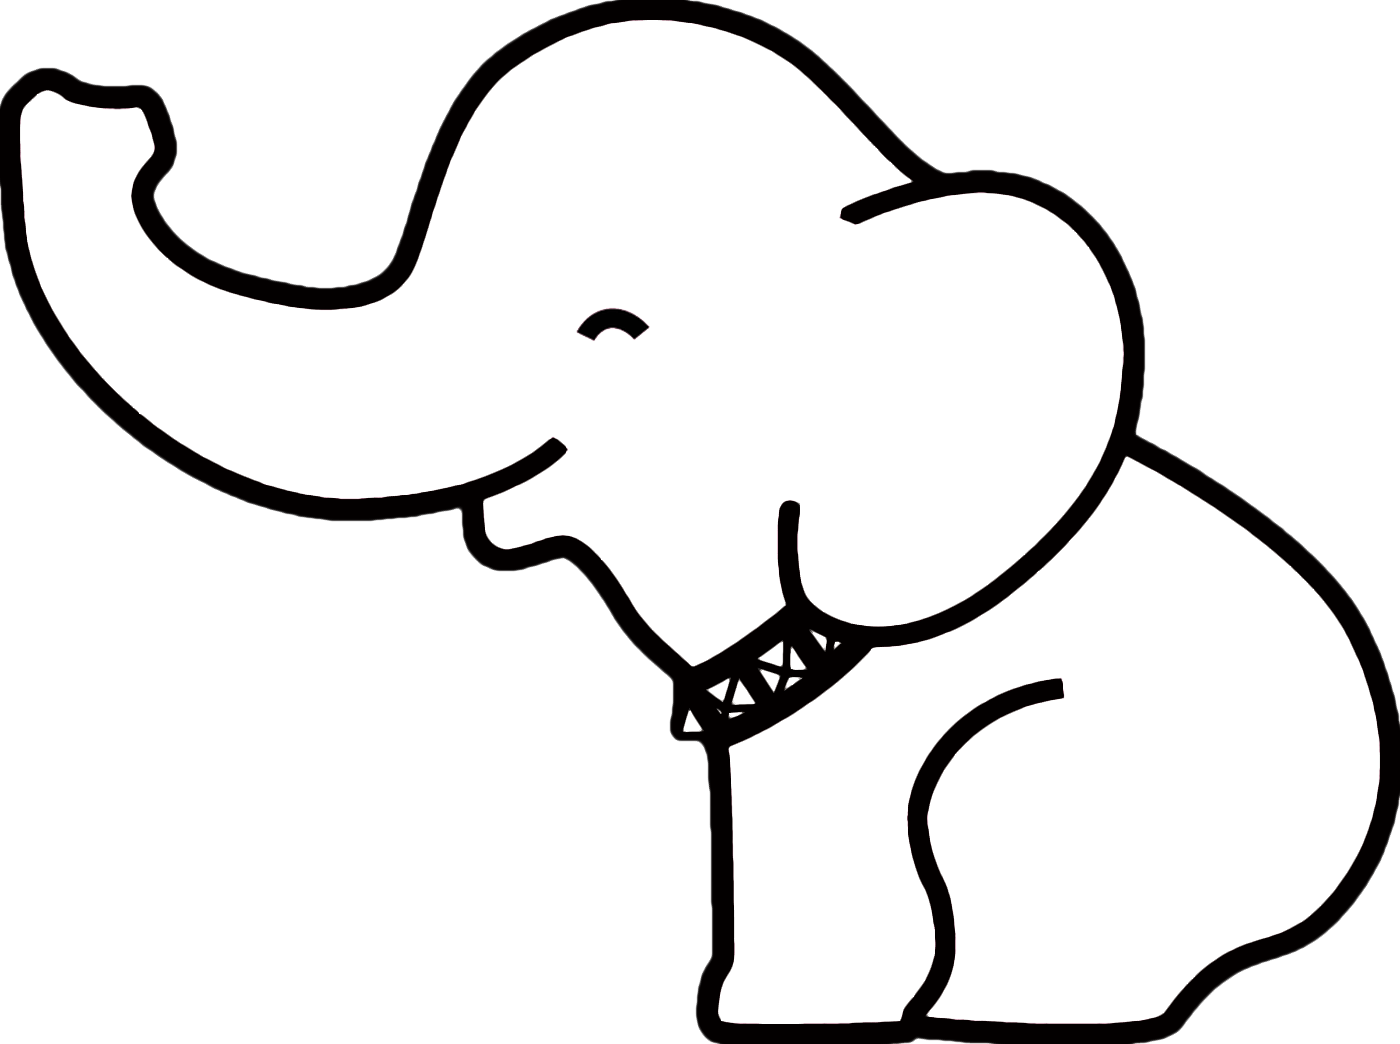 Elephant clip art easy. The outline ideas on